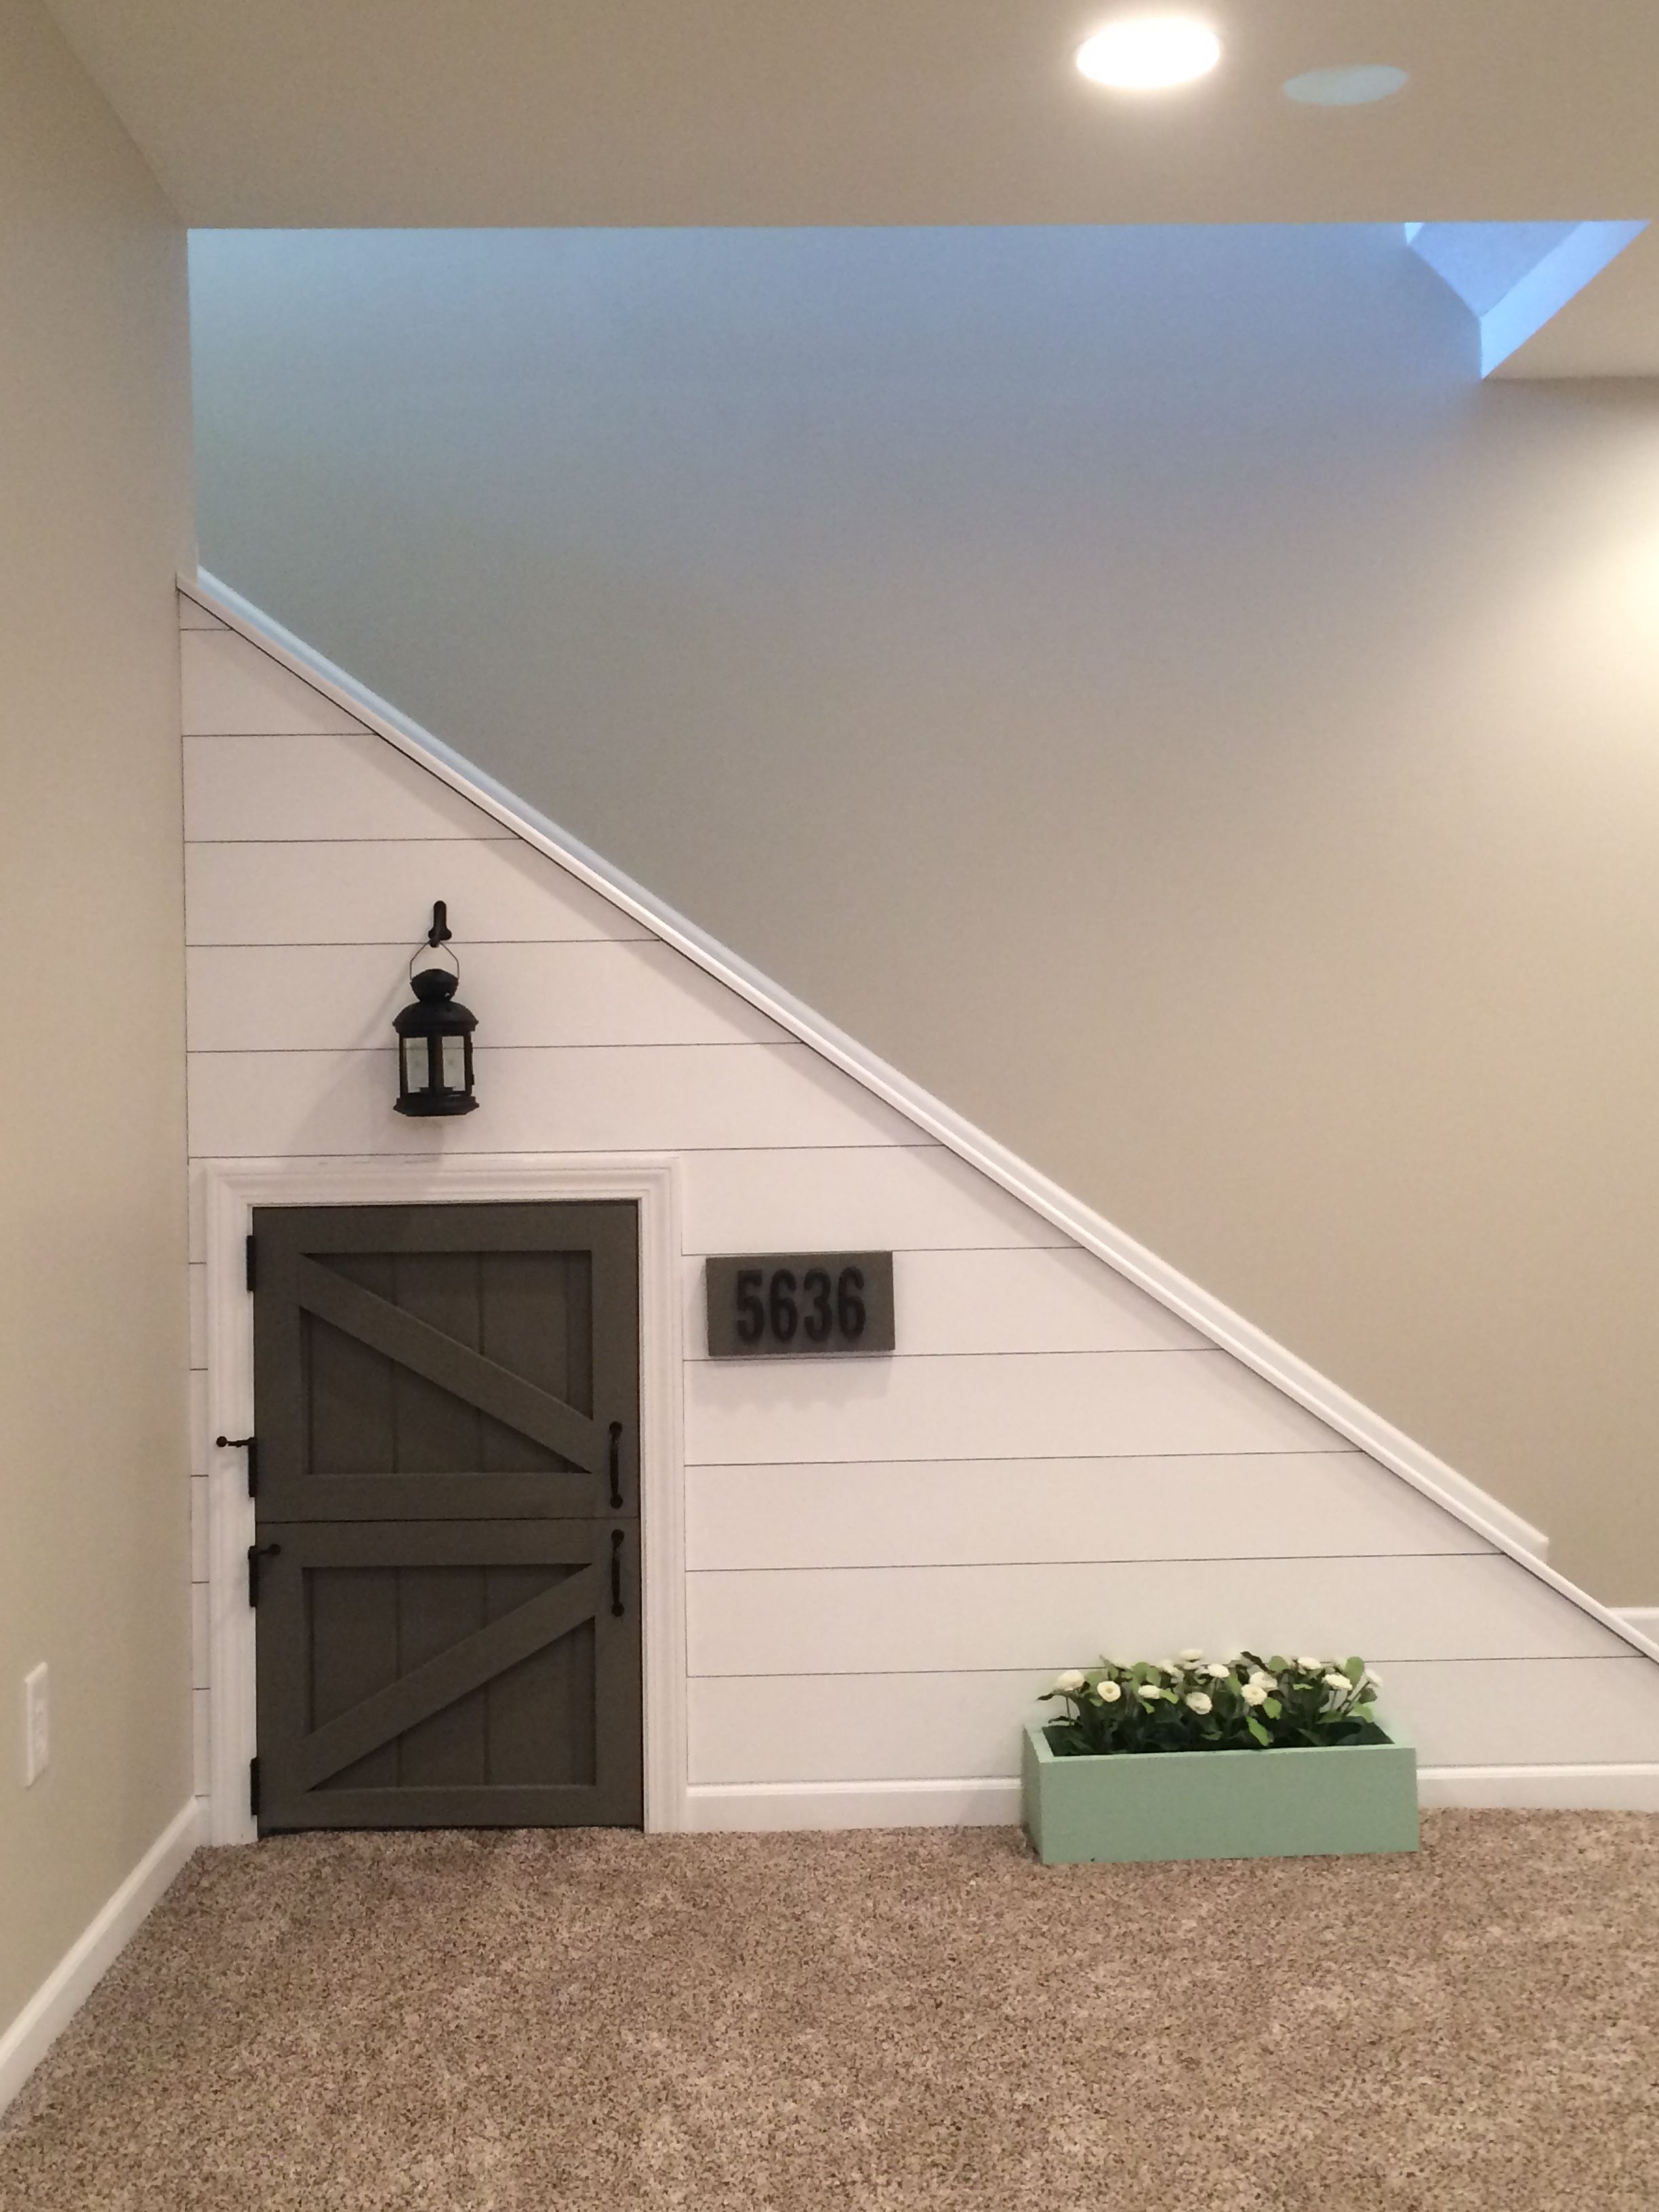 The Girls Love The Playhouse Under The Stairs! | Playroom In 2019